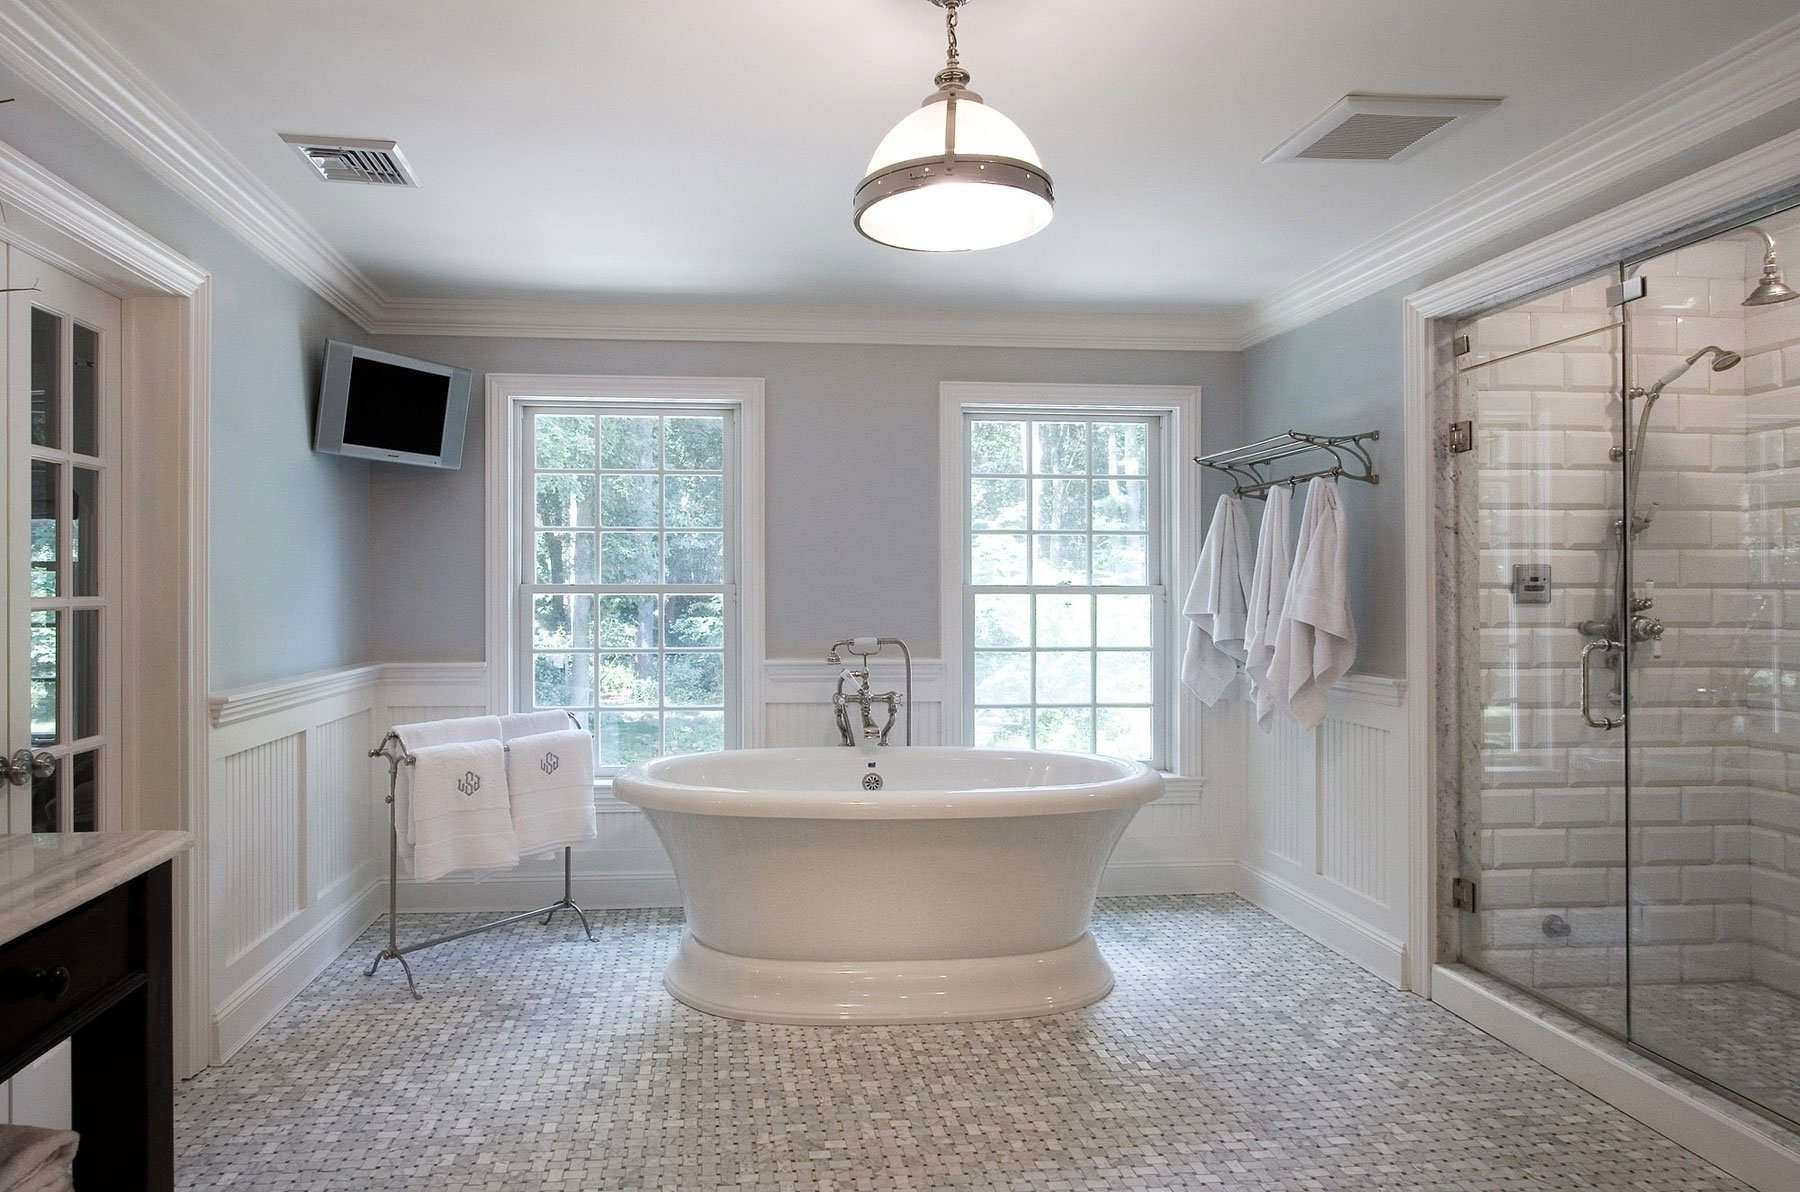 10 Most Recommended Master Bathroom Ideas Photo Gallery master bathroom designs home plans 2020